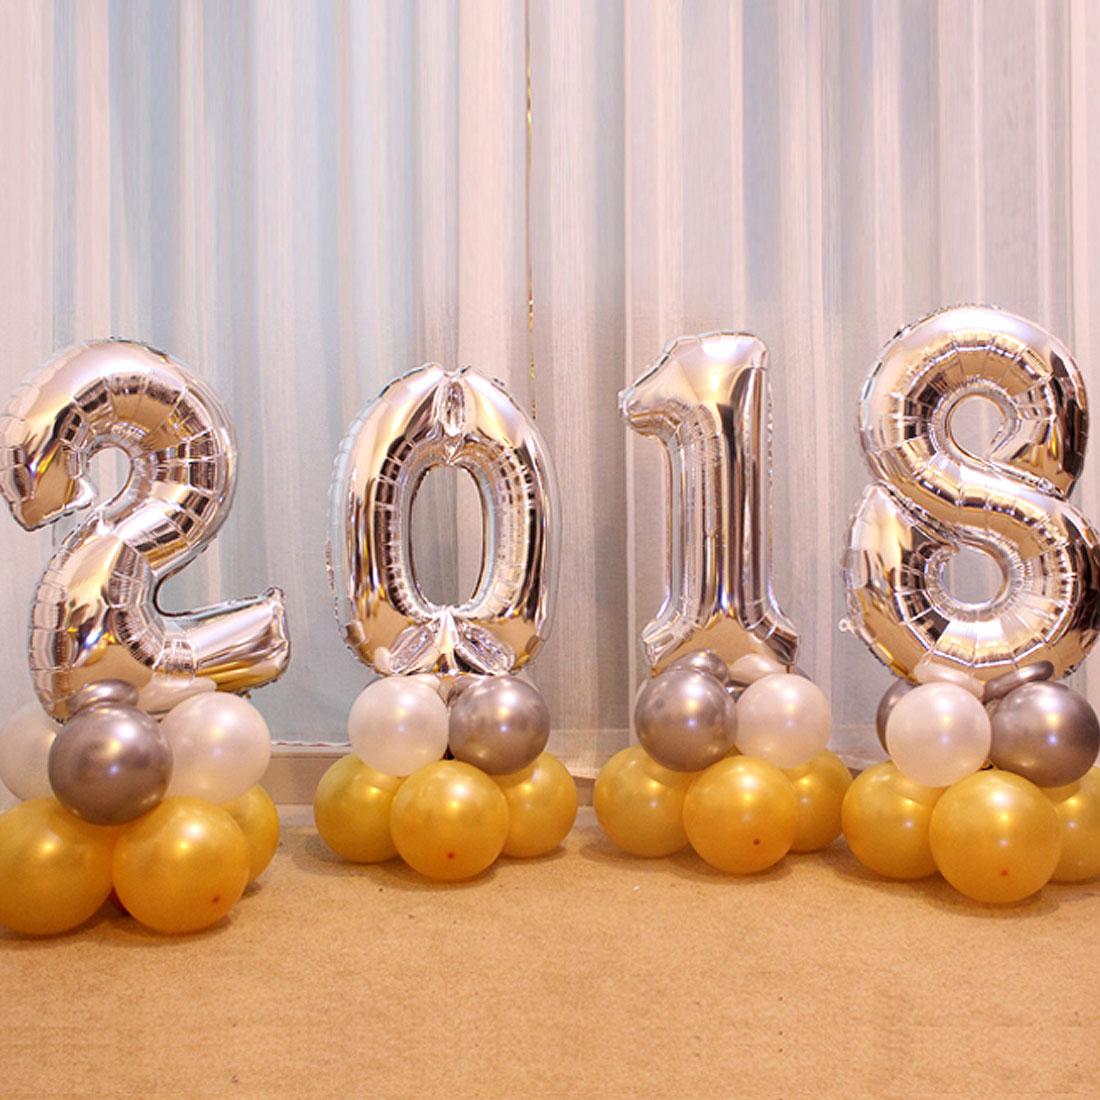 Aliexpress.com : Buy 4 Pieces 2018 Number Foil Balloons ...